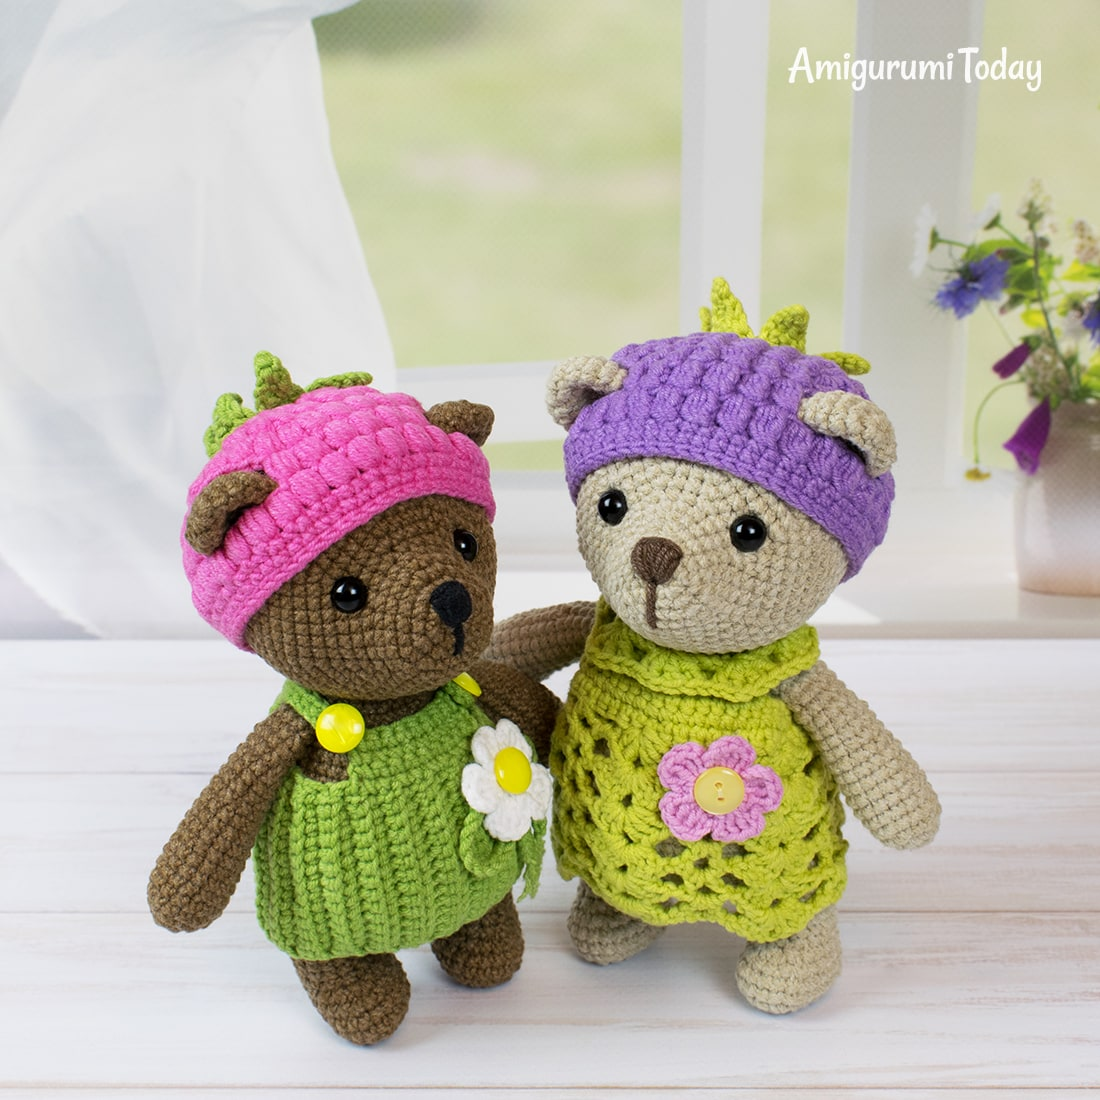 Raspberry and blackberry bear crochet patterns by Amigurumi Today